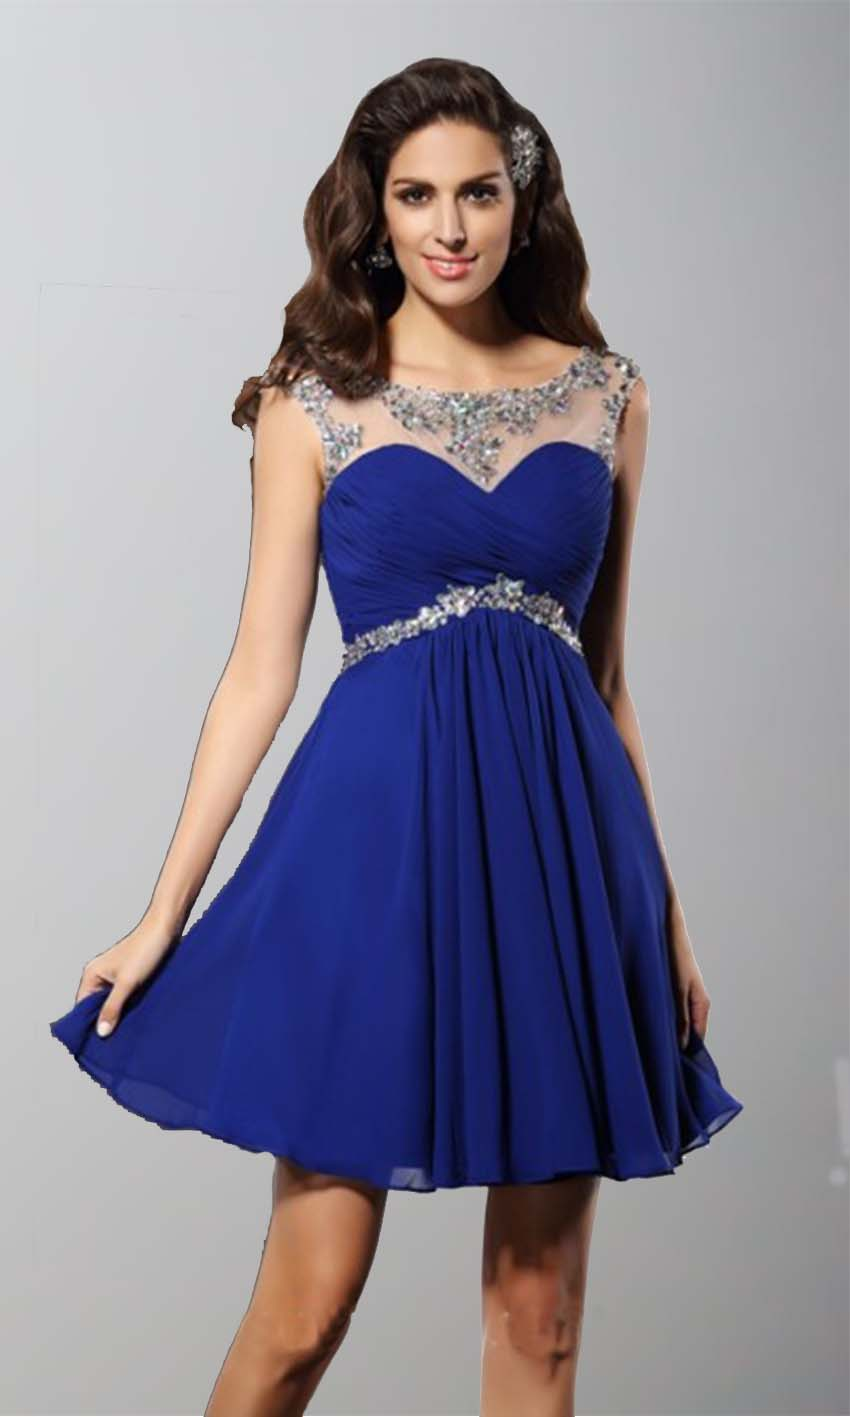 Jeweled dresses uk cheap